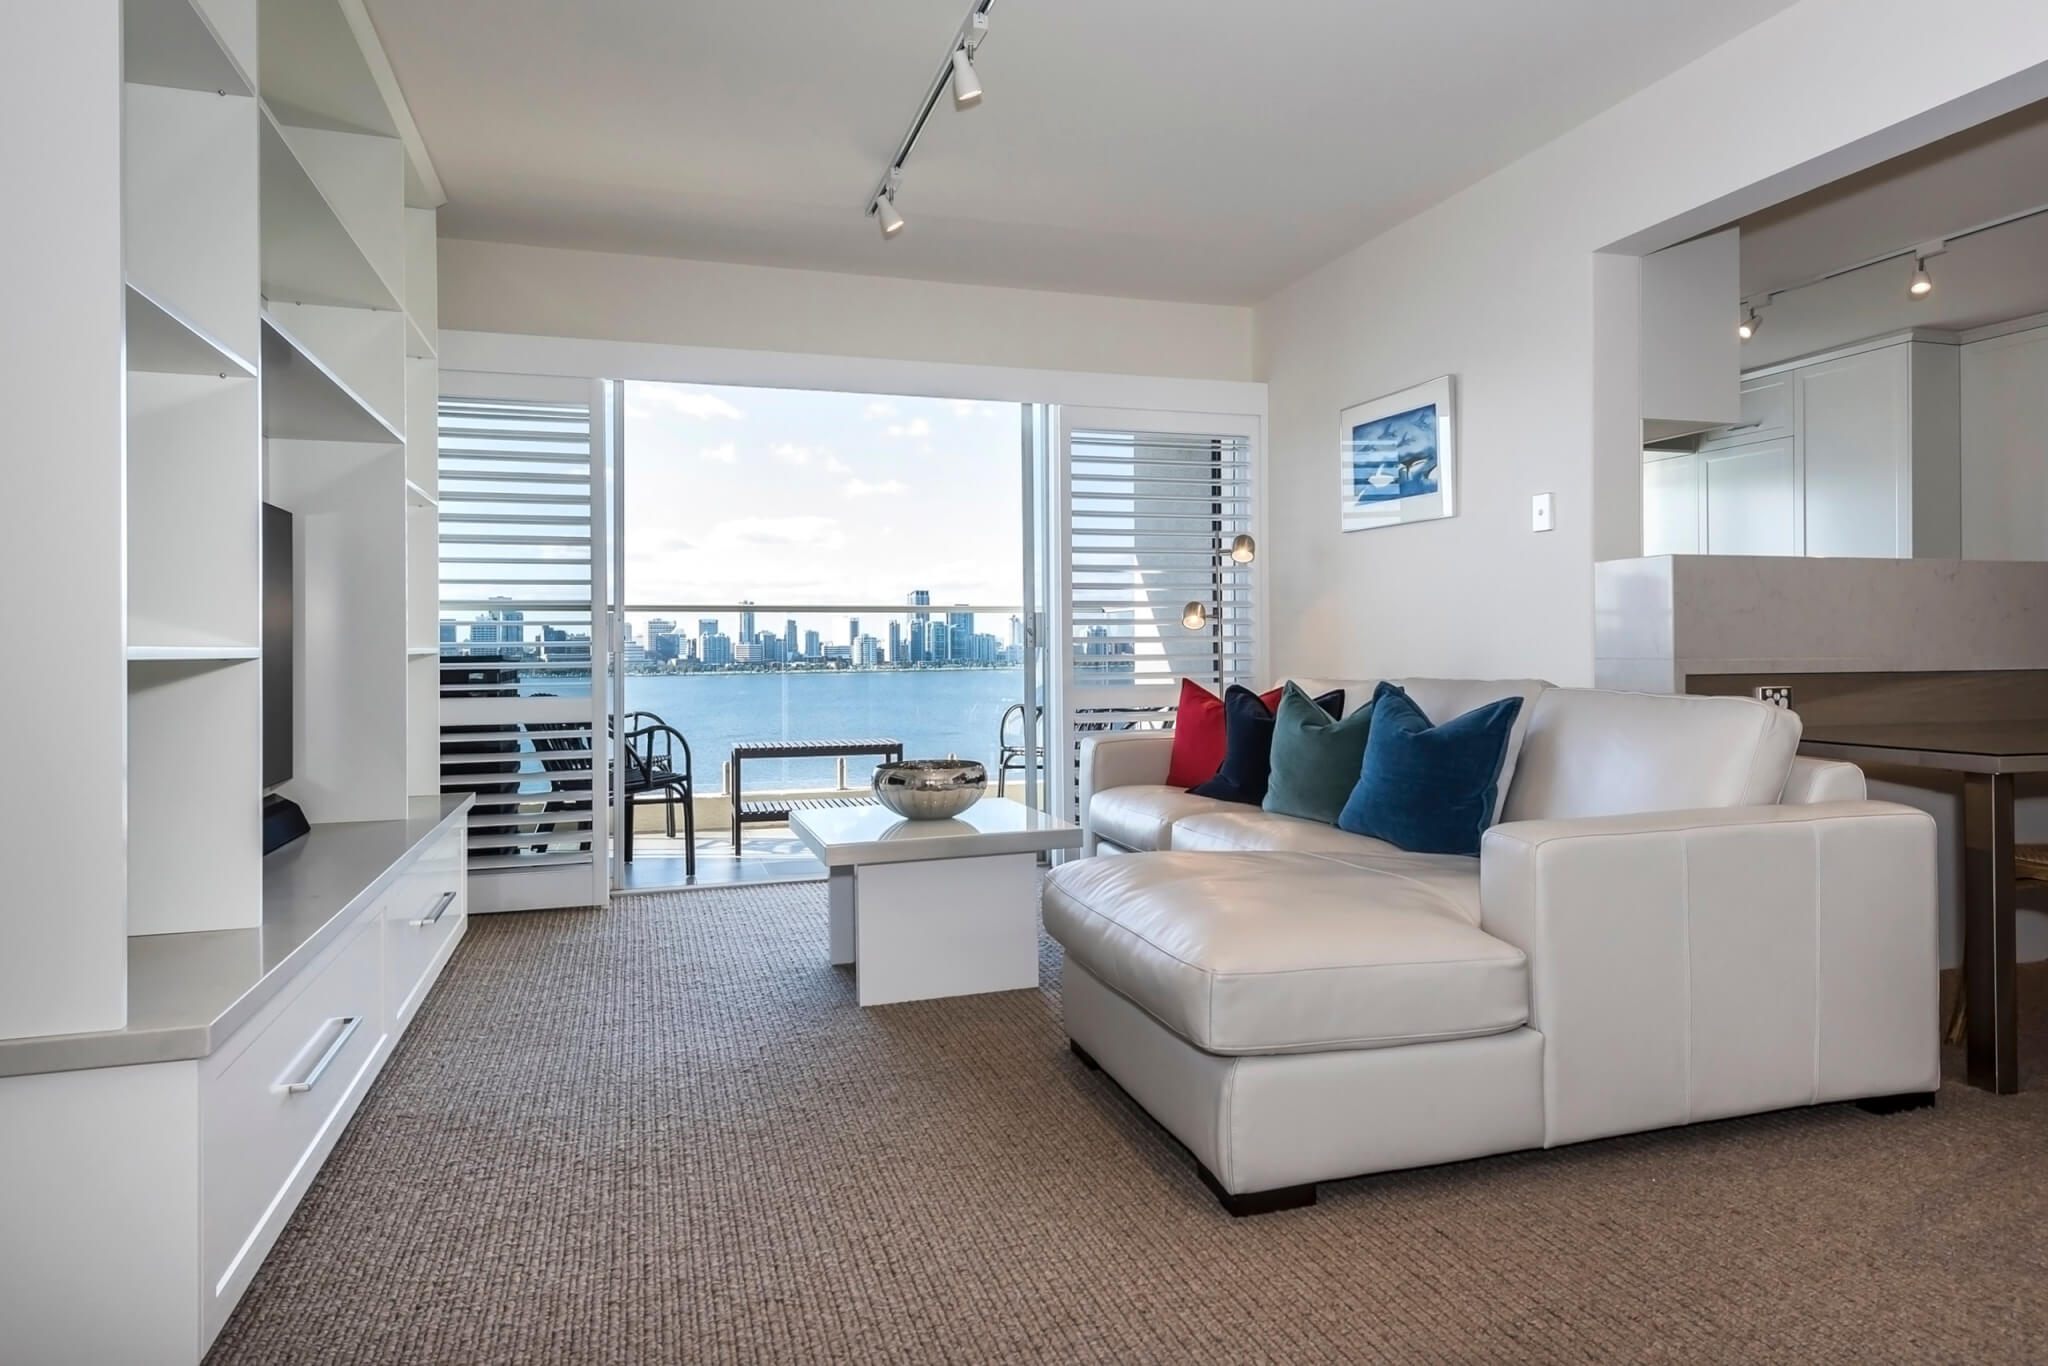 South Perth home extension